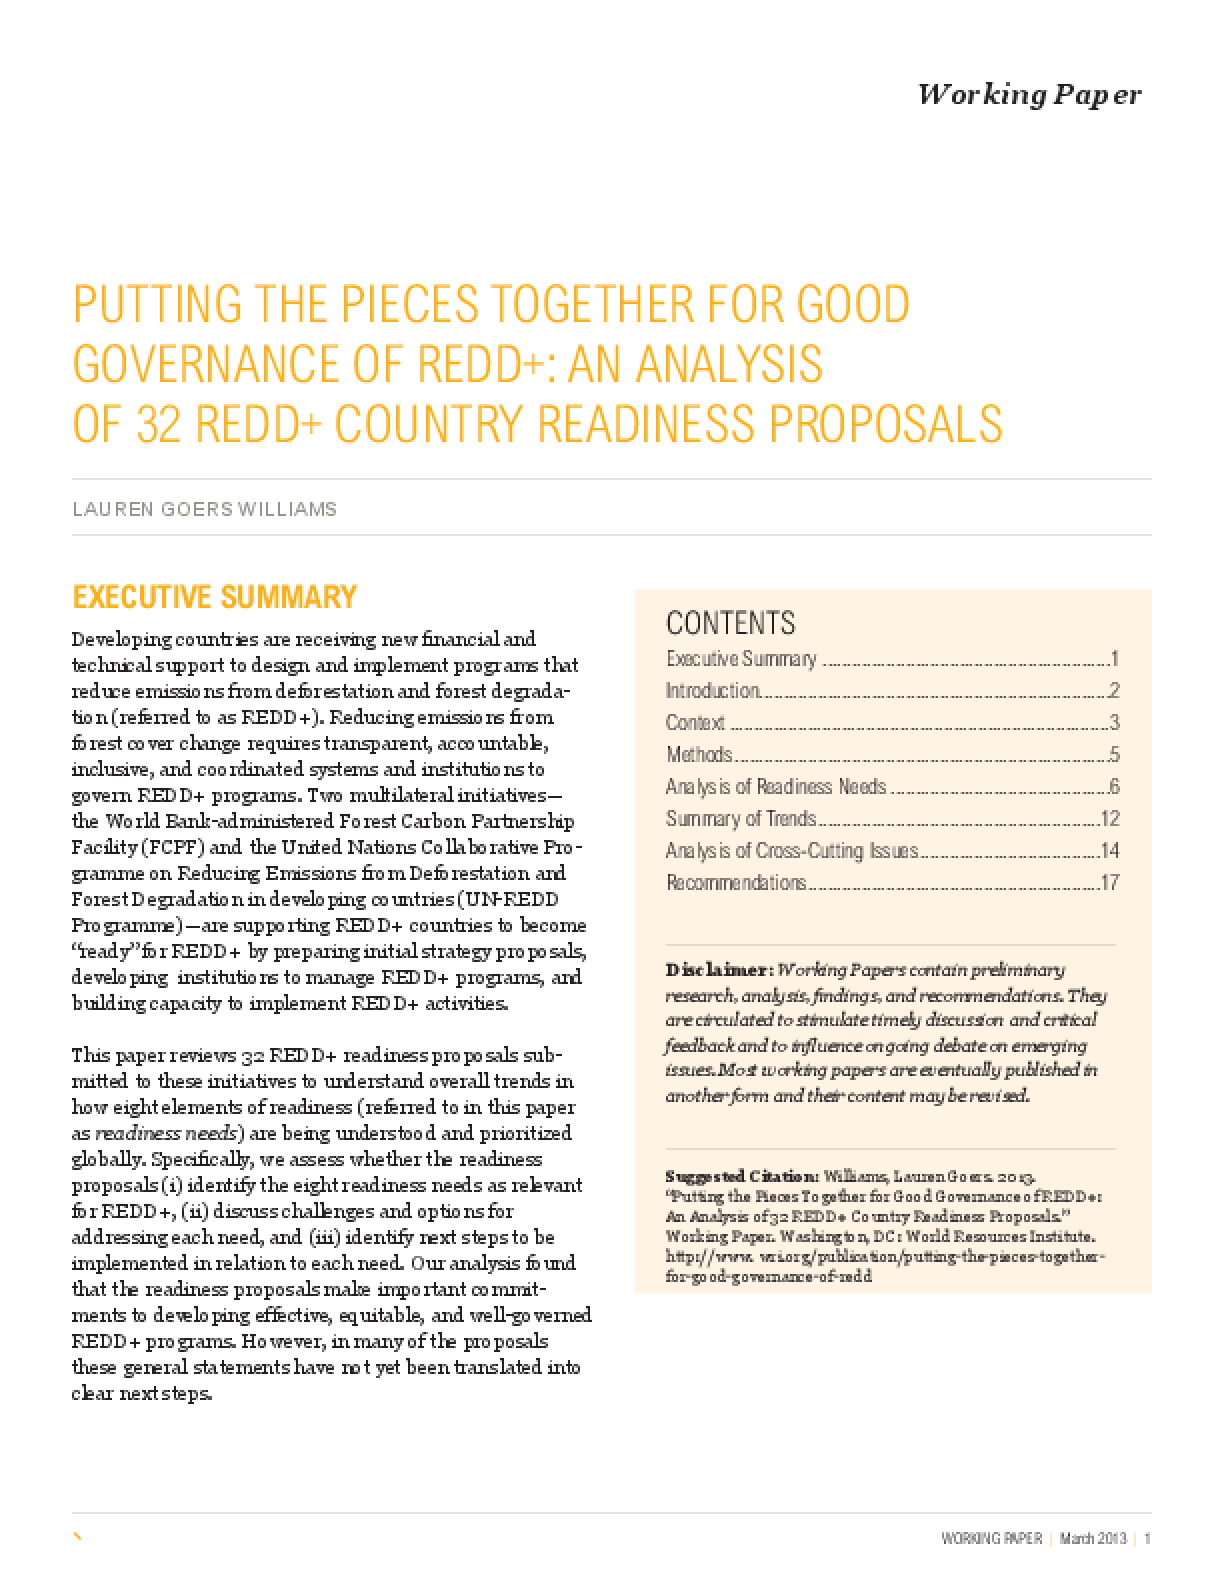 Putting the Pieces Together for Good Governance of REDD+: An Analysis of 32 REDD+ Country Readiness Proposals